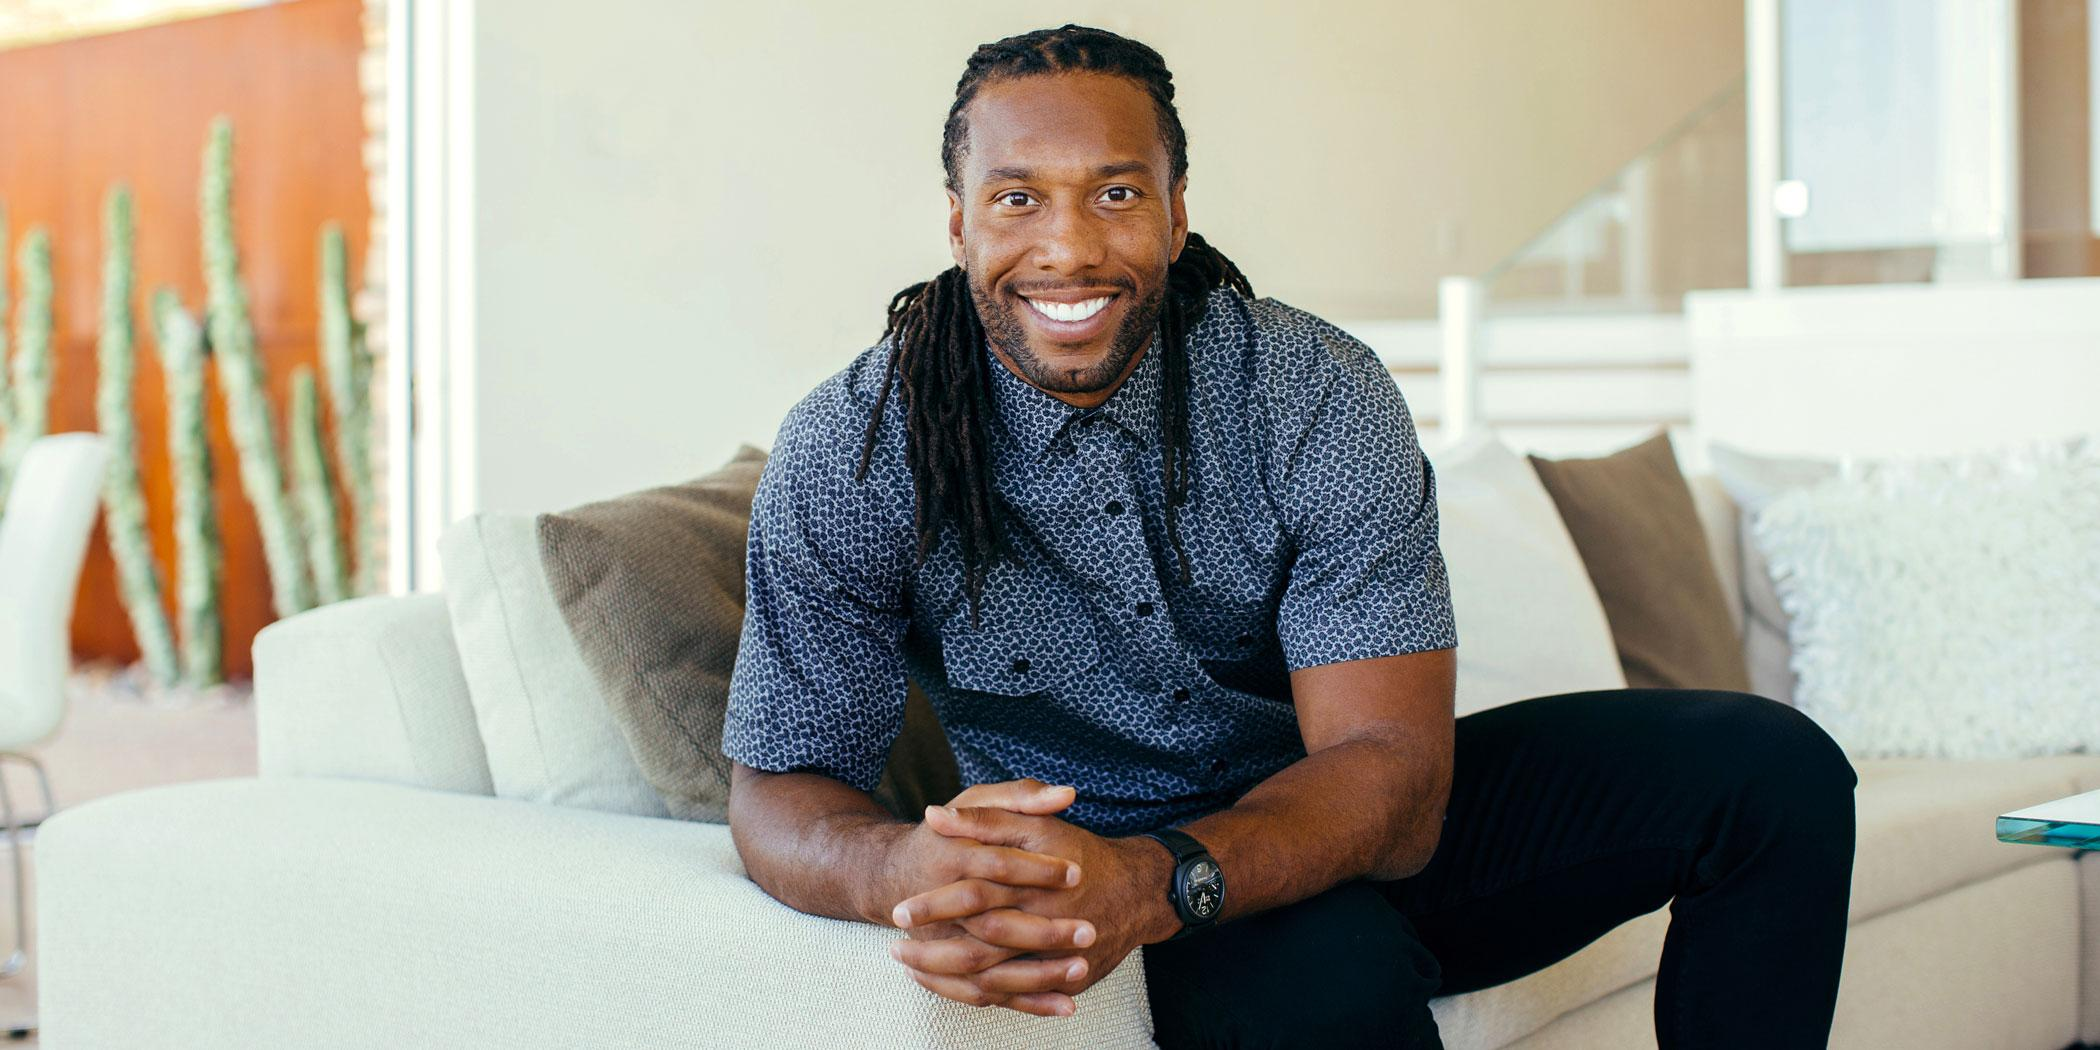 Larry Fitzgerald, Arizona Cardinals football player (Photo: Jill Richards)